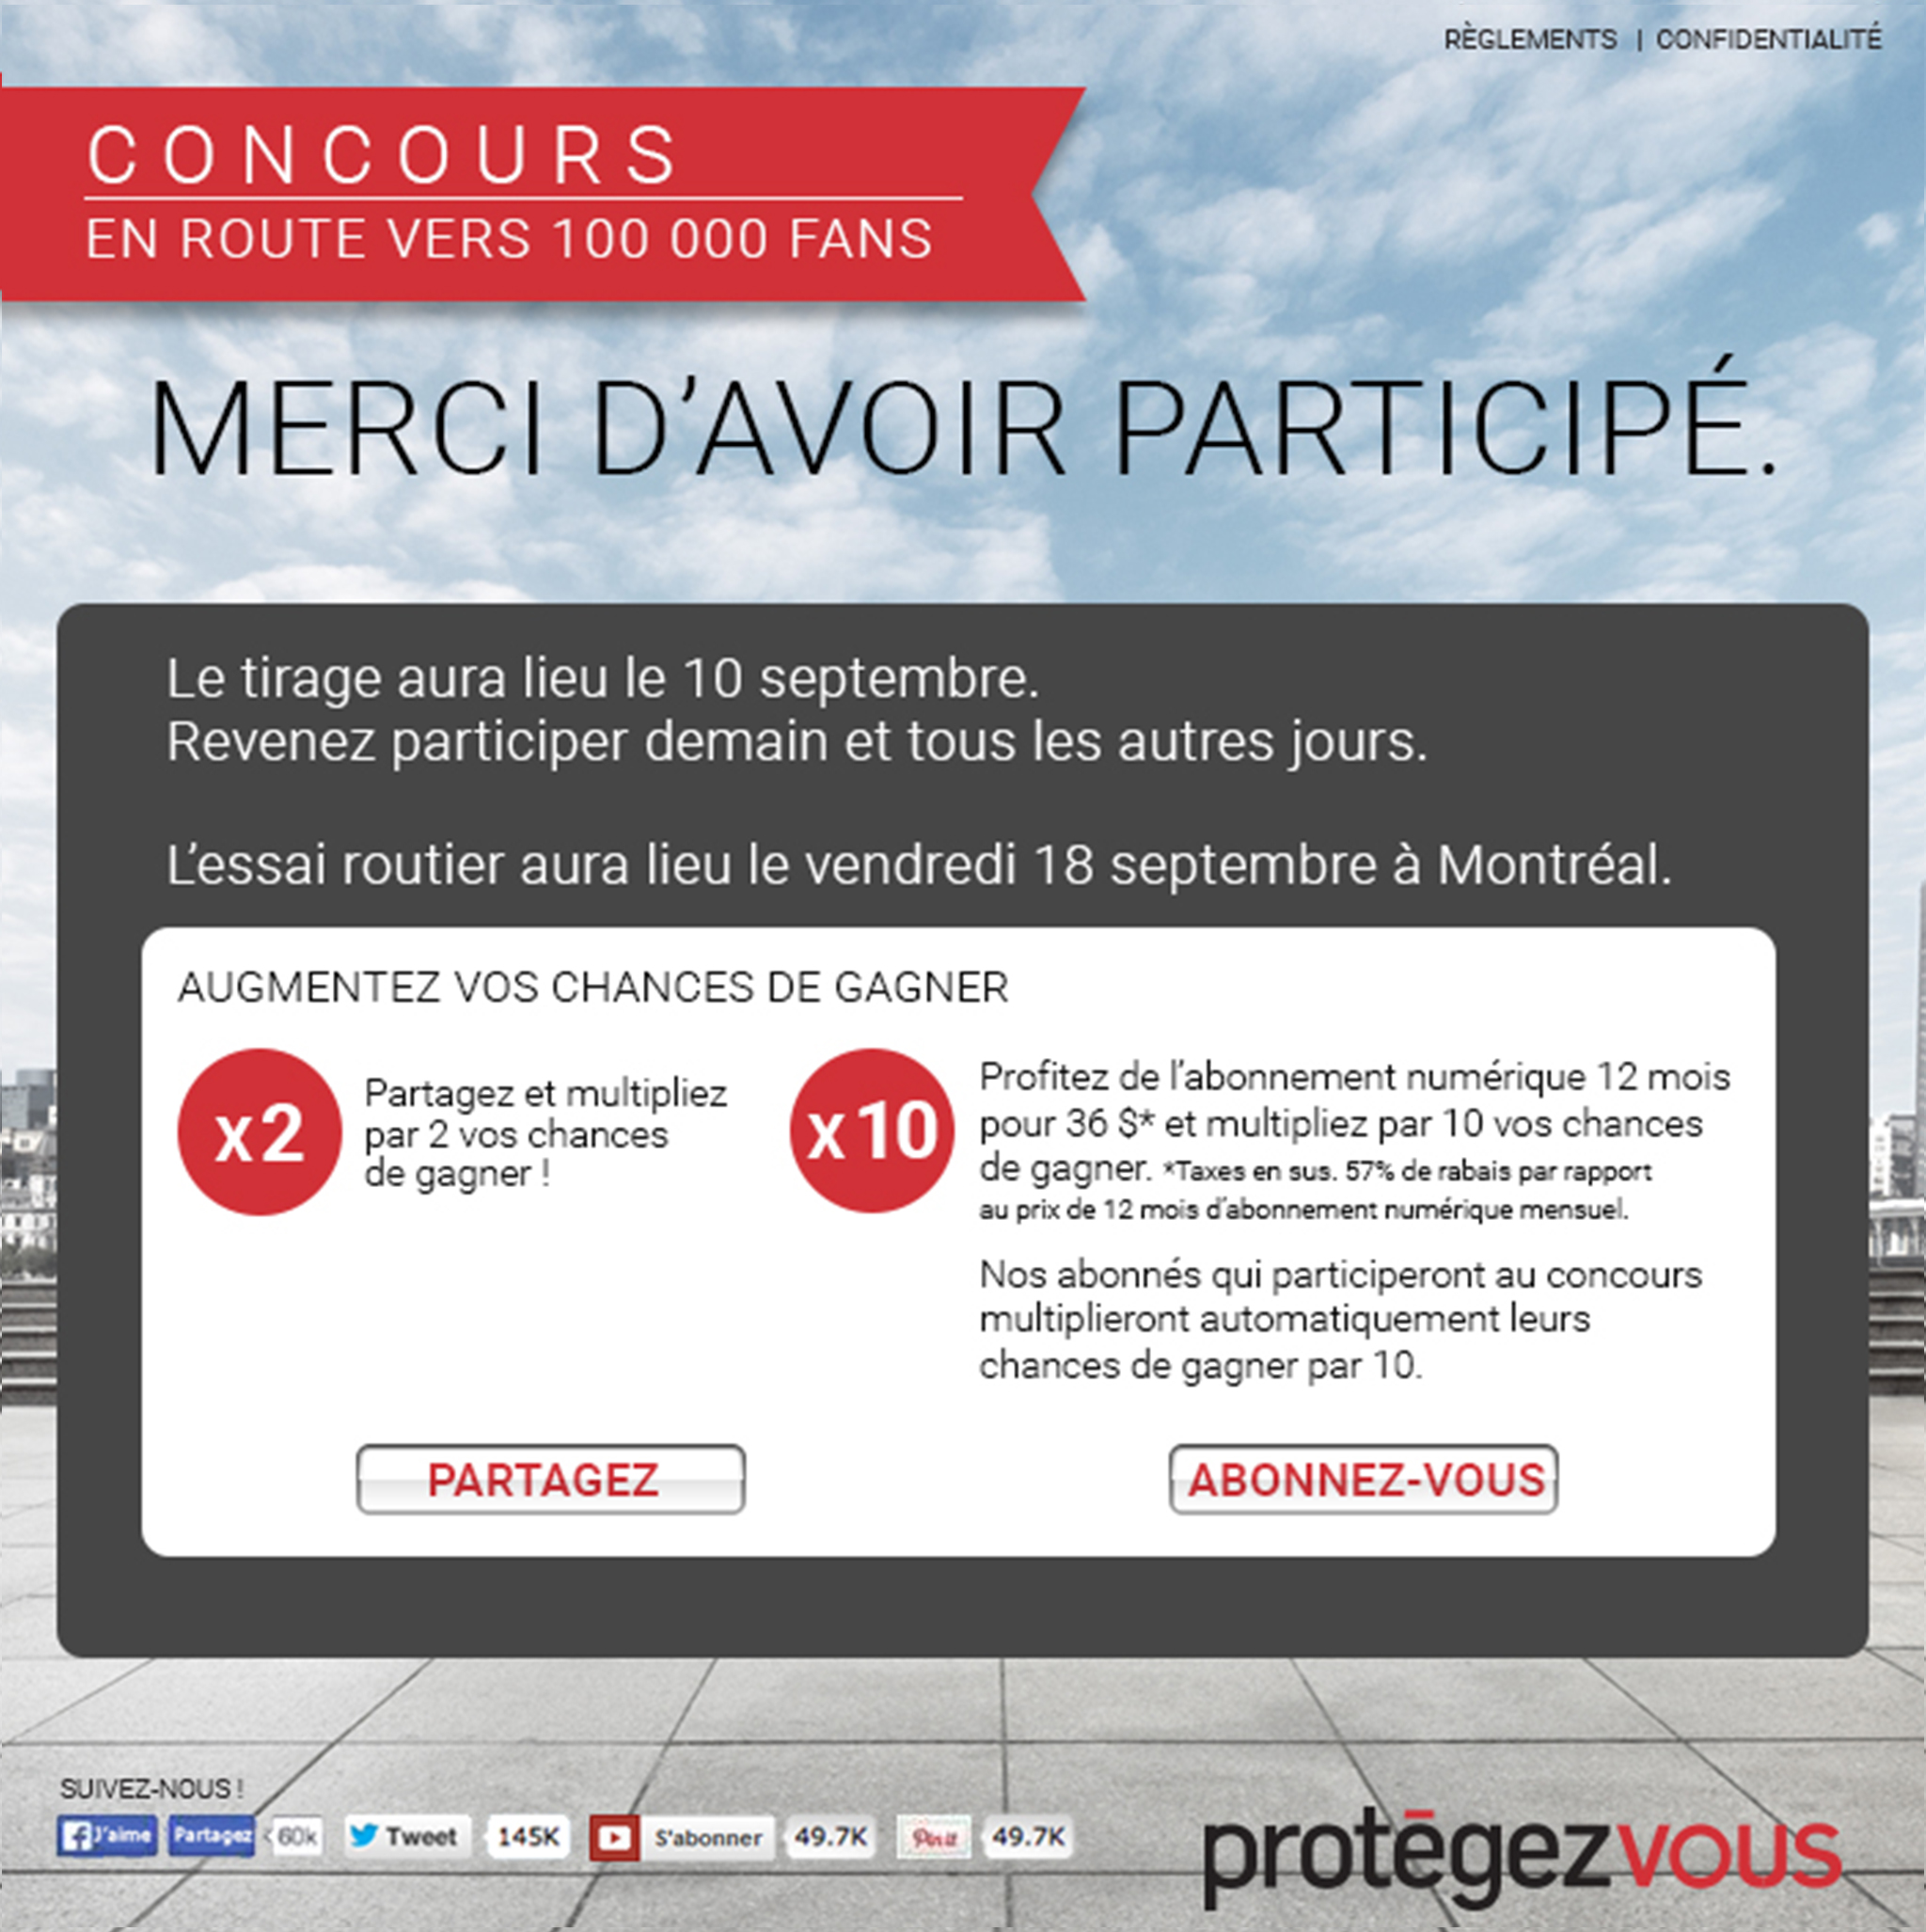 Pages_LandingConcours_04.jpg